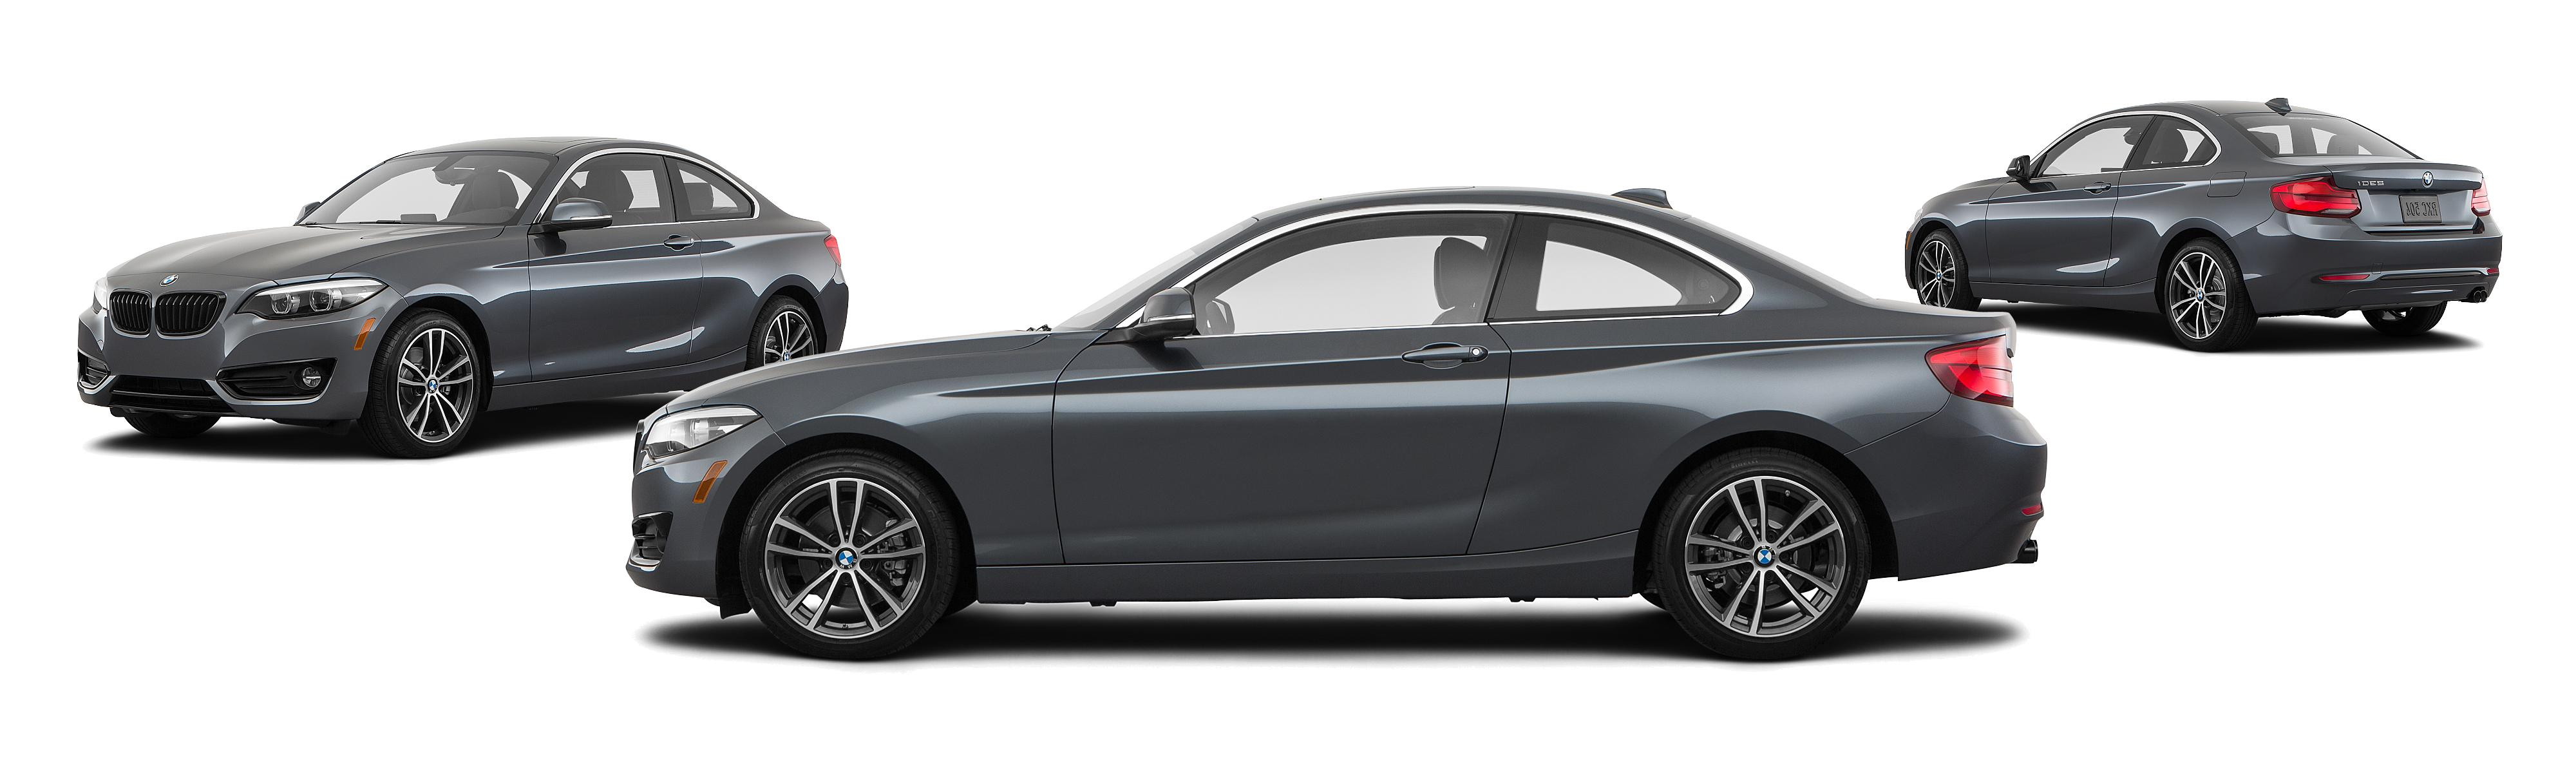 2019 bmw 2 series 230i 2dr coupe research groovecar rh groovecar com